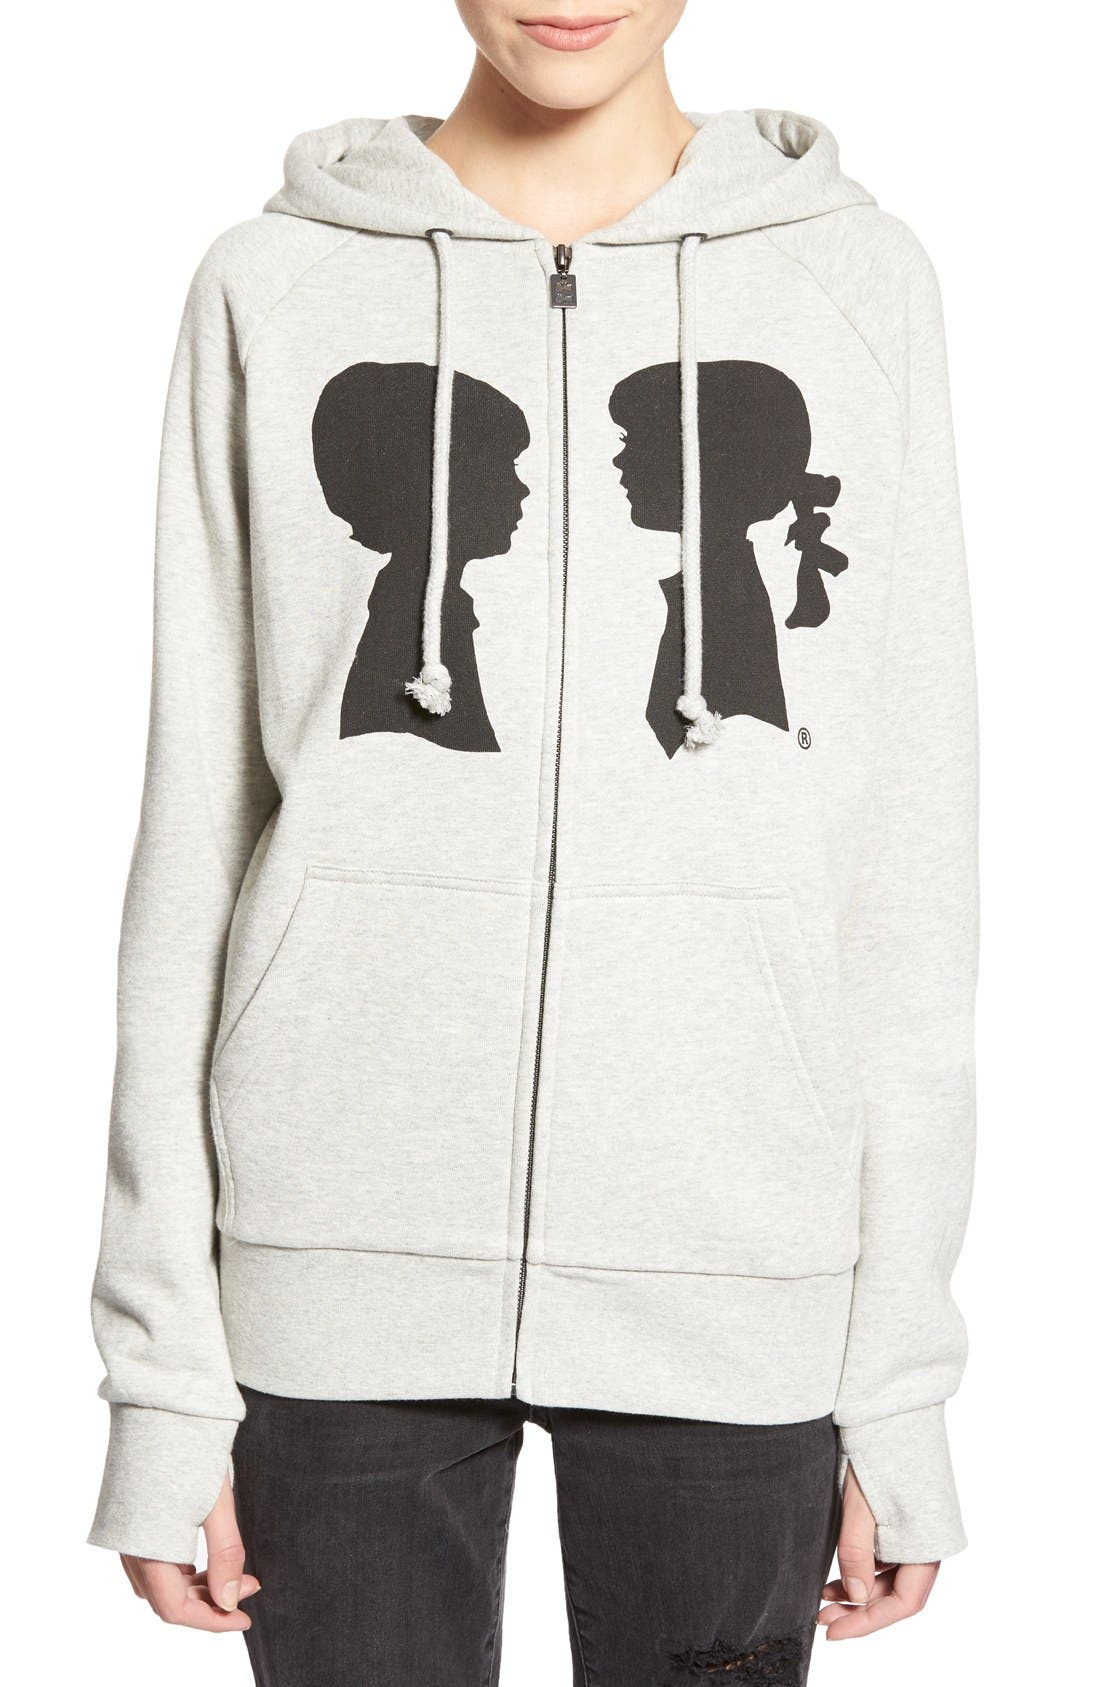 boy meets girl silhouette hoodie Plus size clothing disney tangled lanterns silhouette girls t-shirt plus size girls t-shirts, graphic tees and superhero t-shirts.